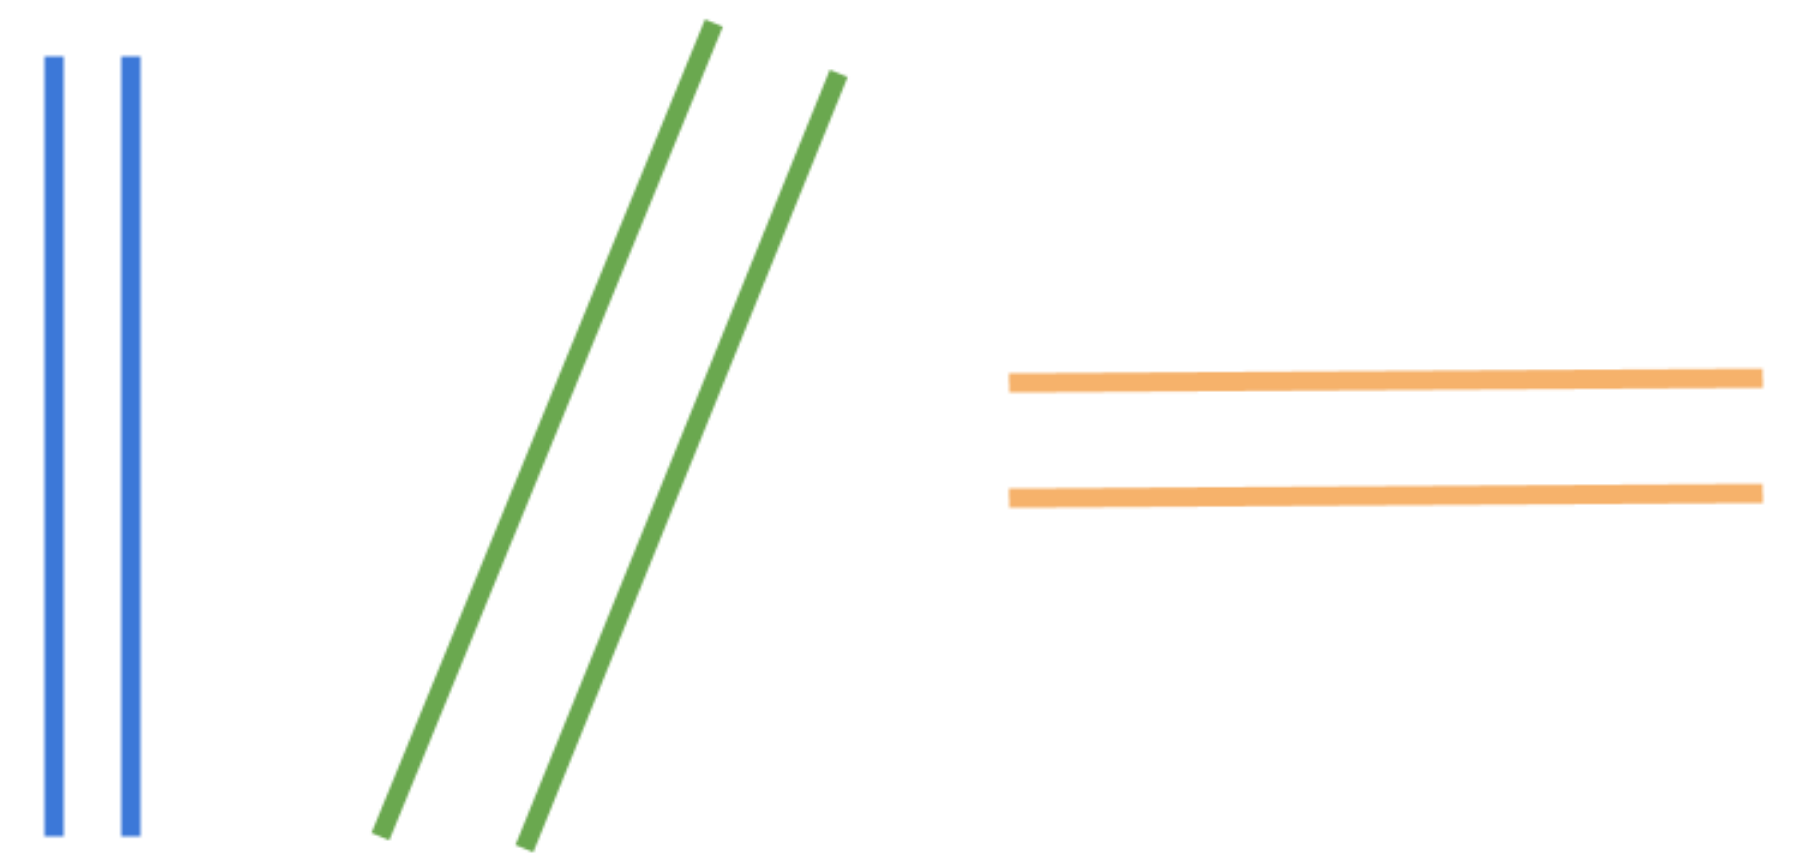 these are all parallel lines